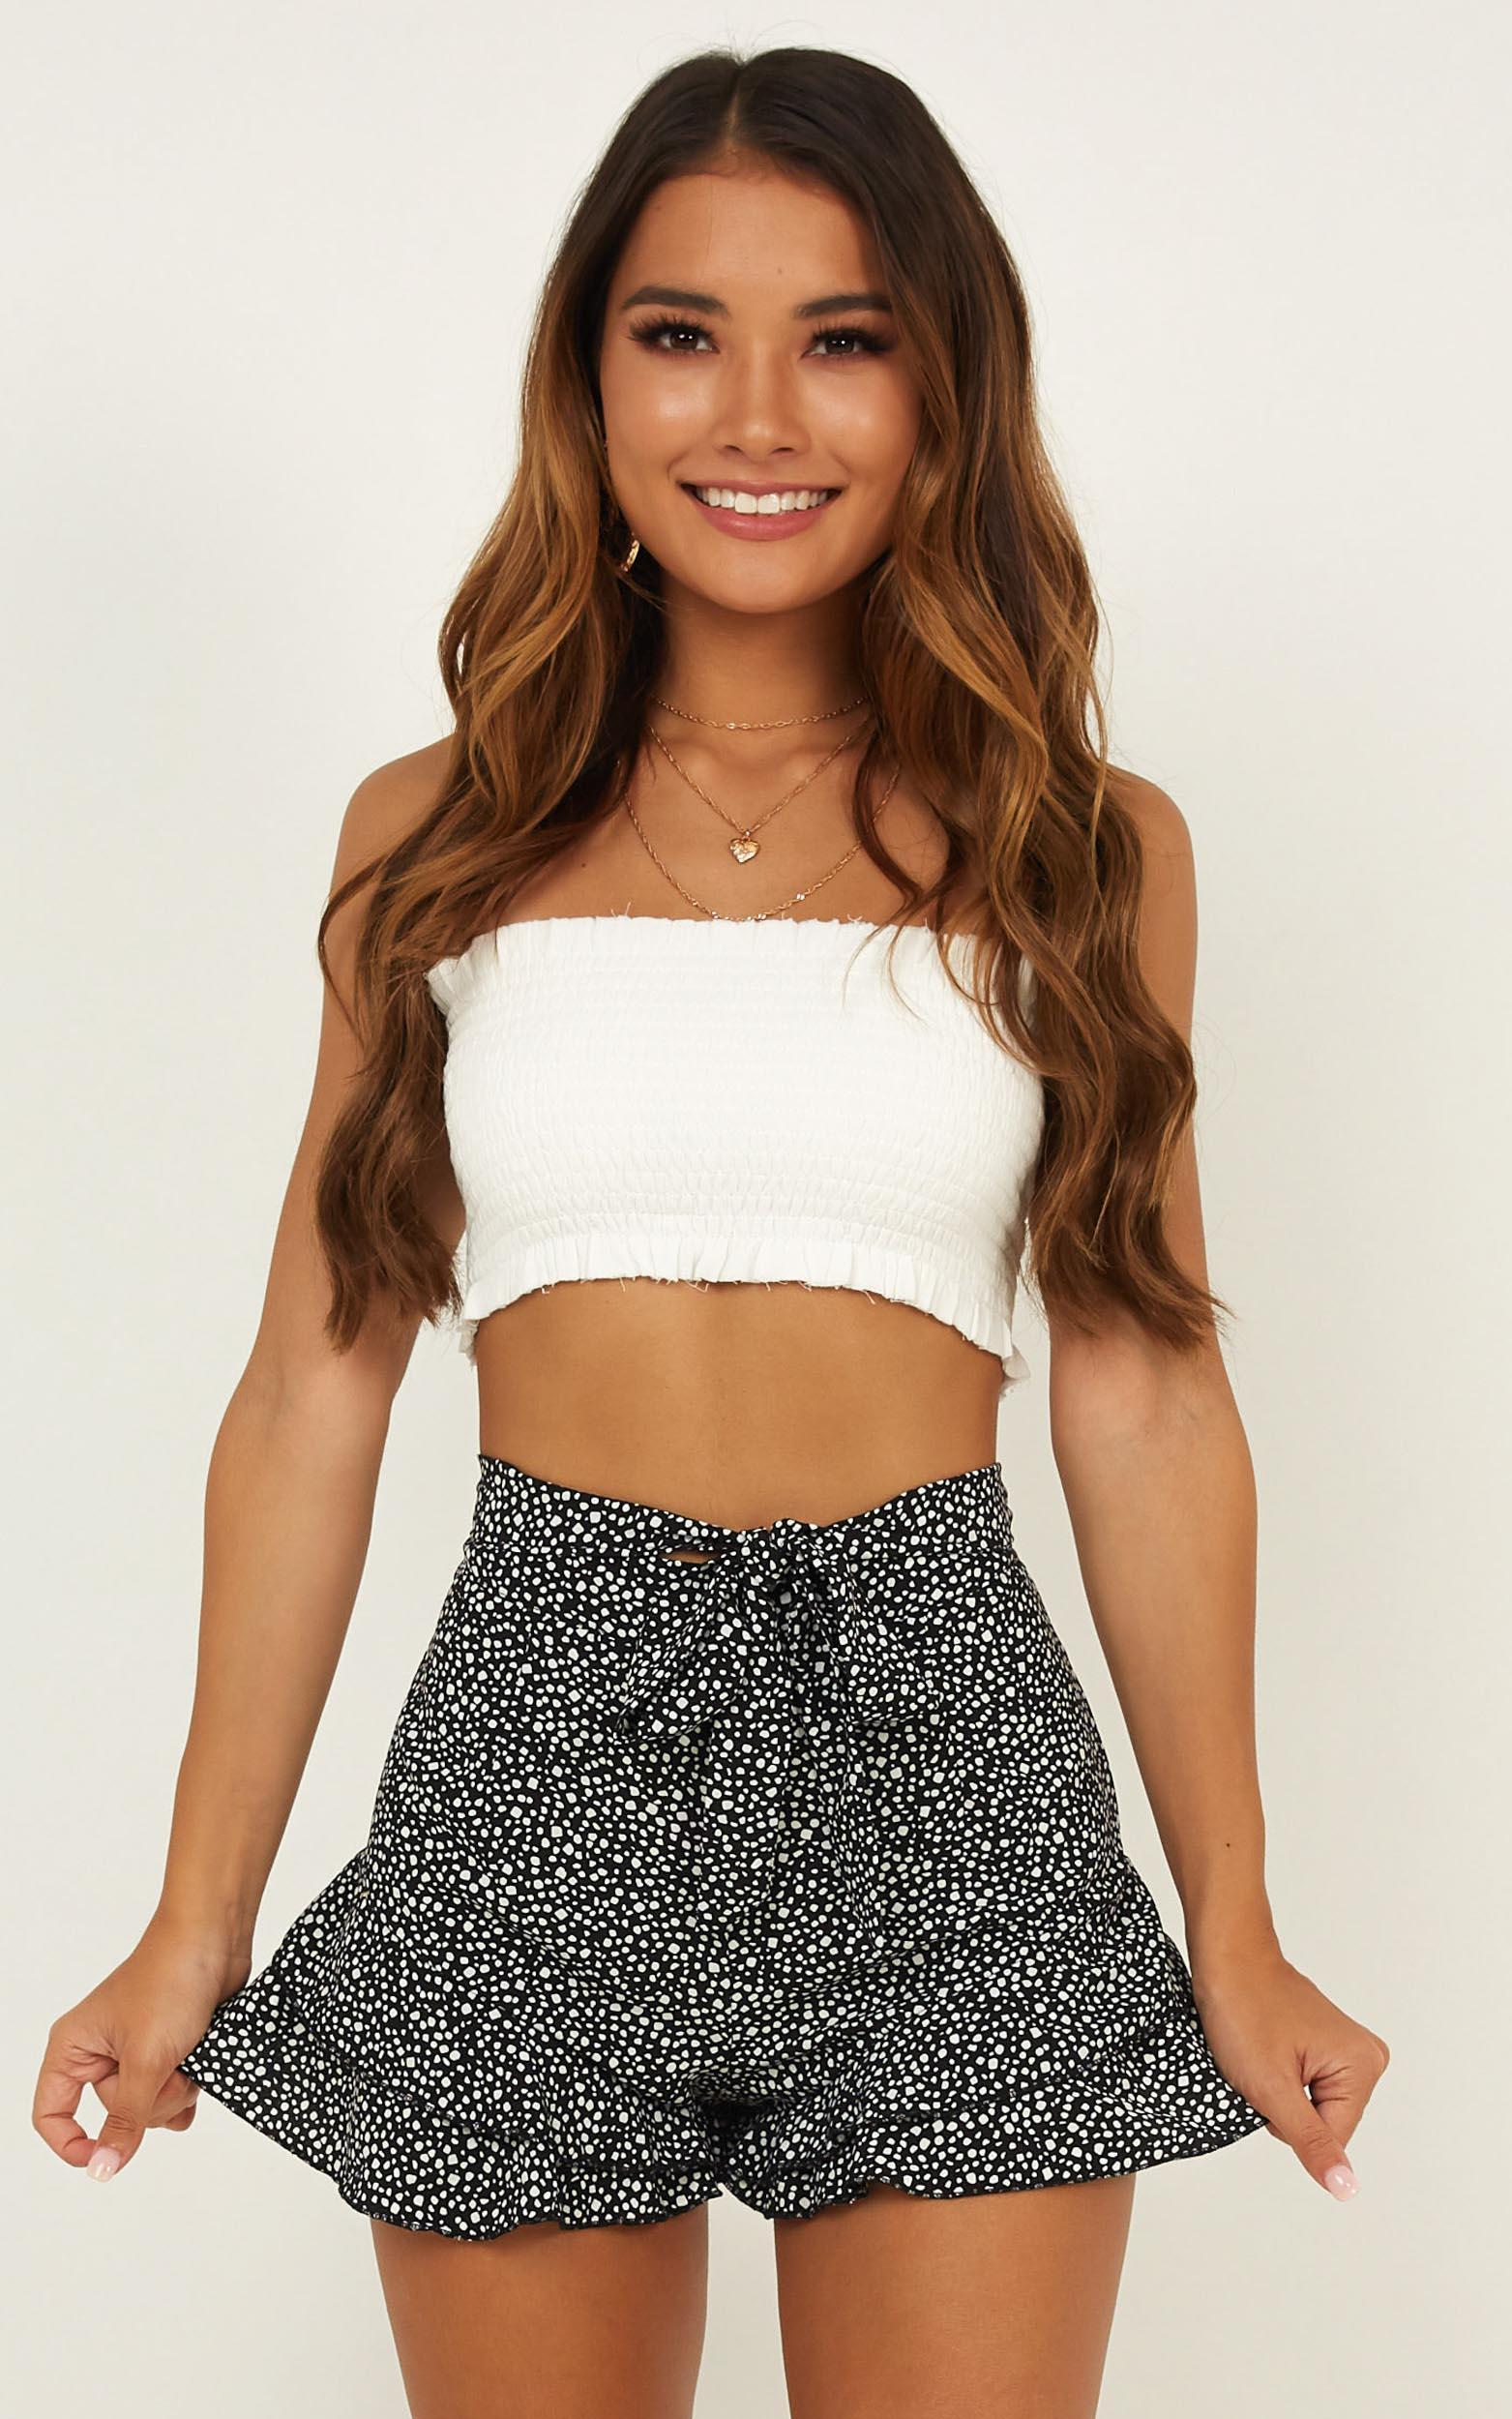 Here To Dance shorts in black print - 12 (L), Black, hi-res image number null